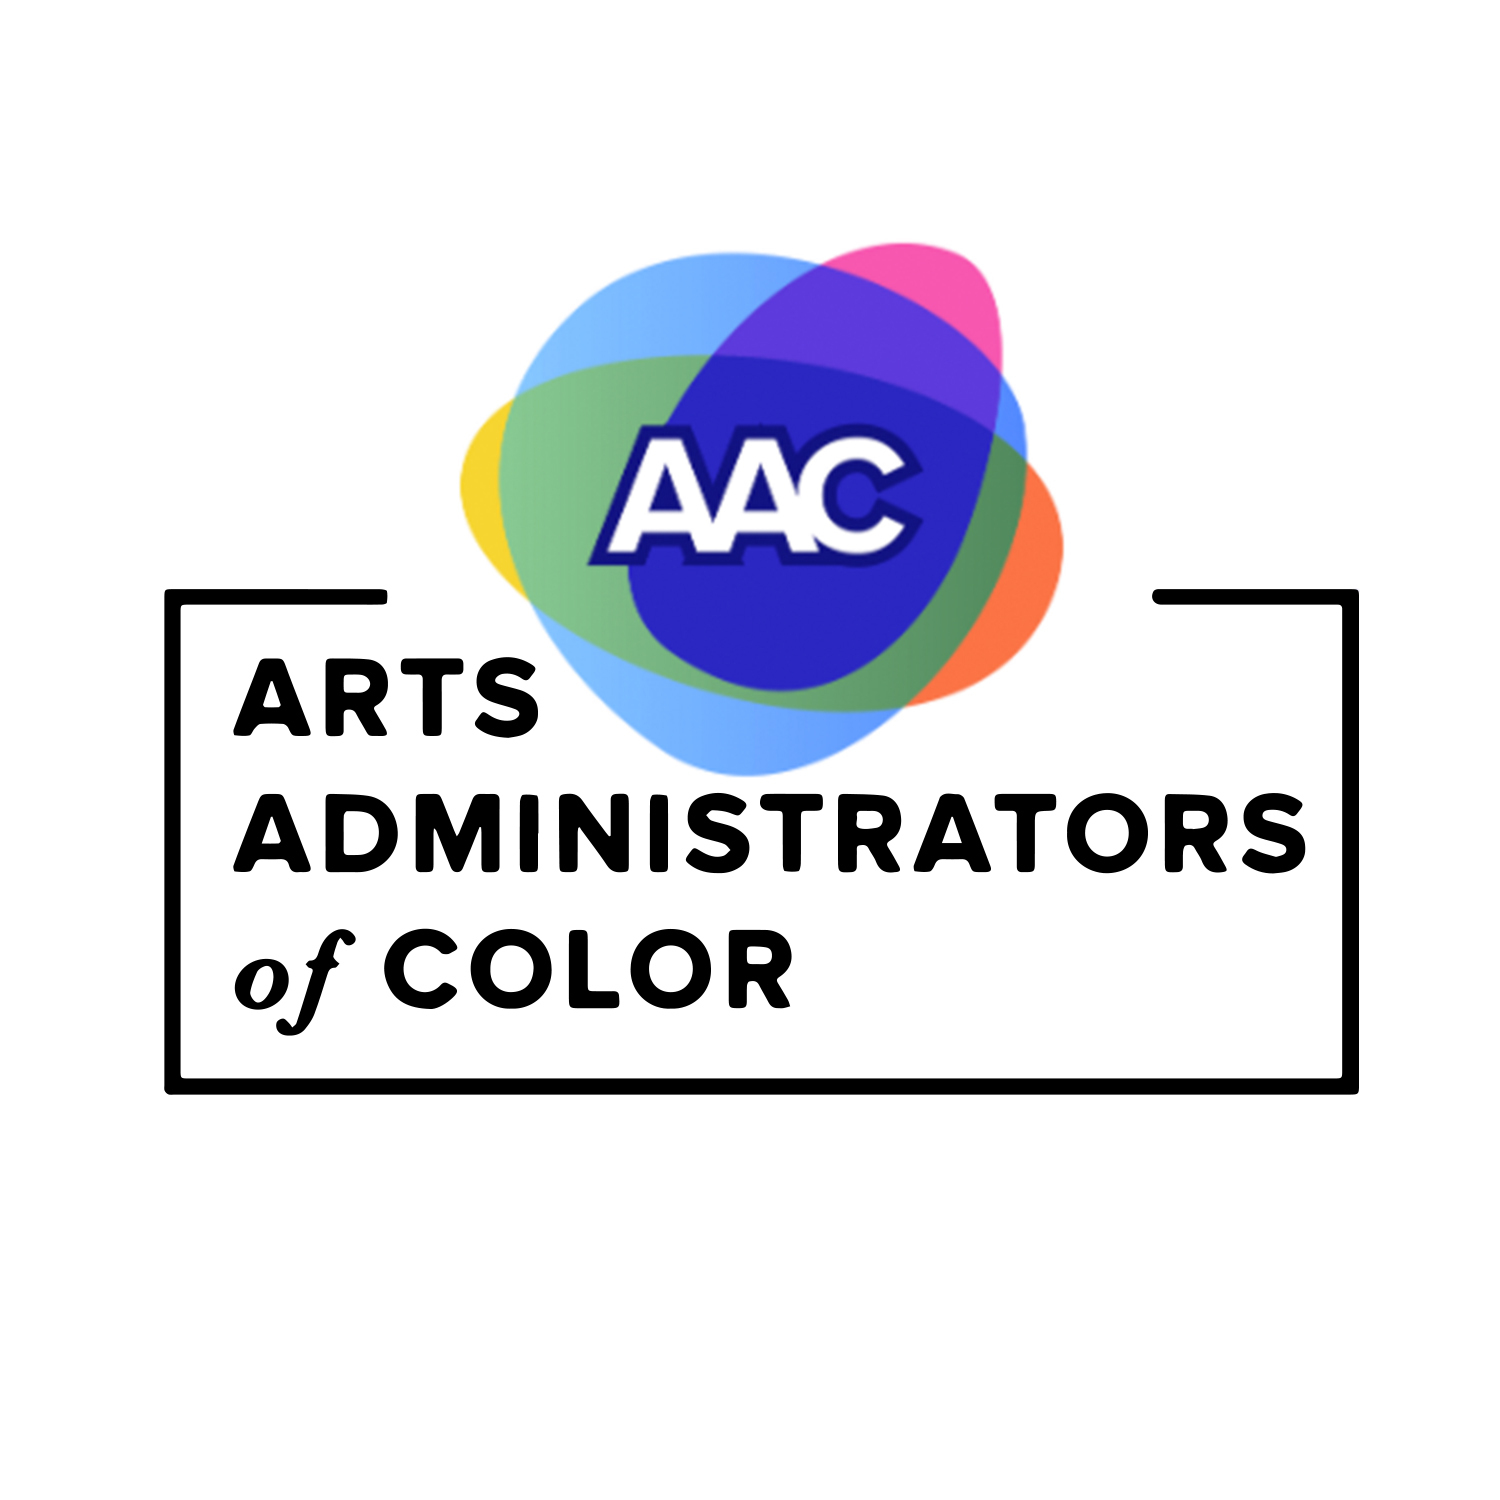 Arts Administrators of Color